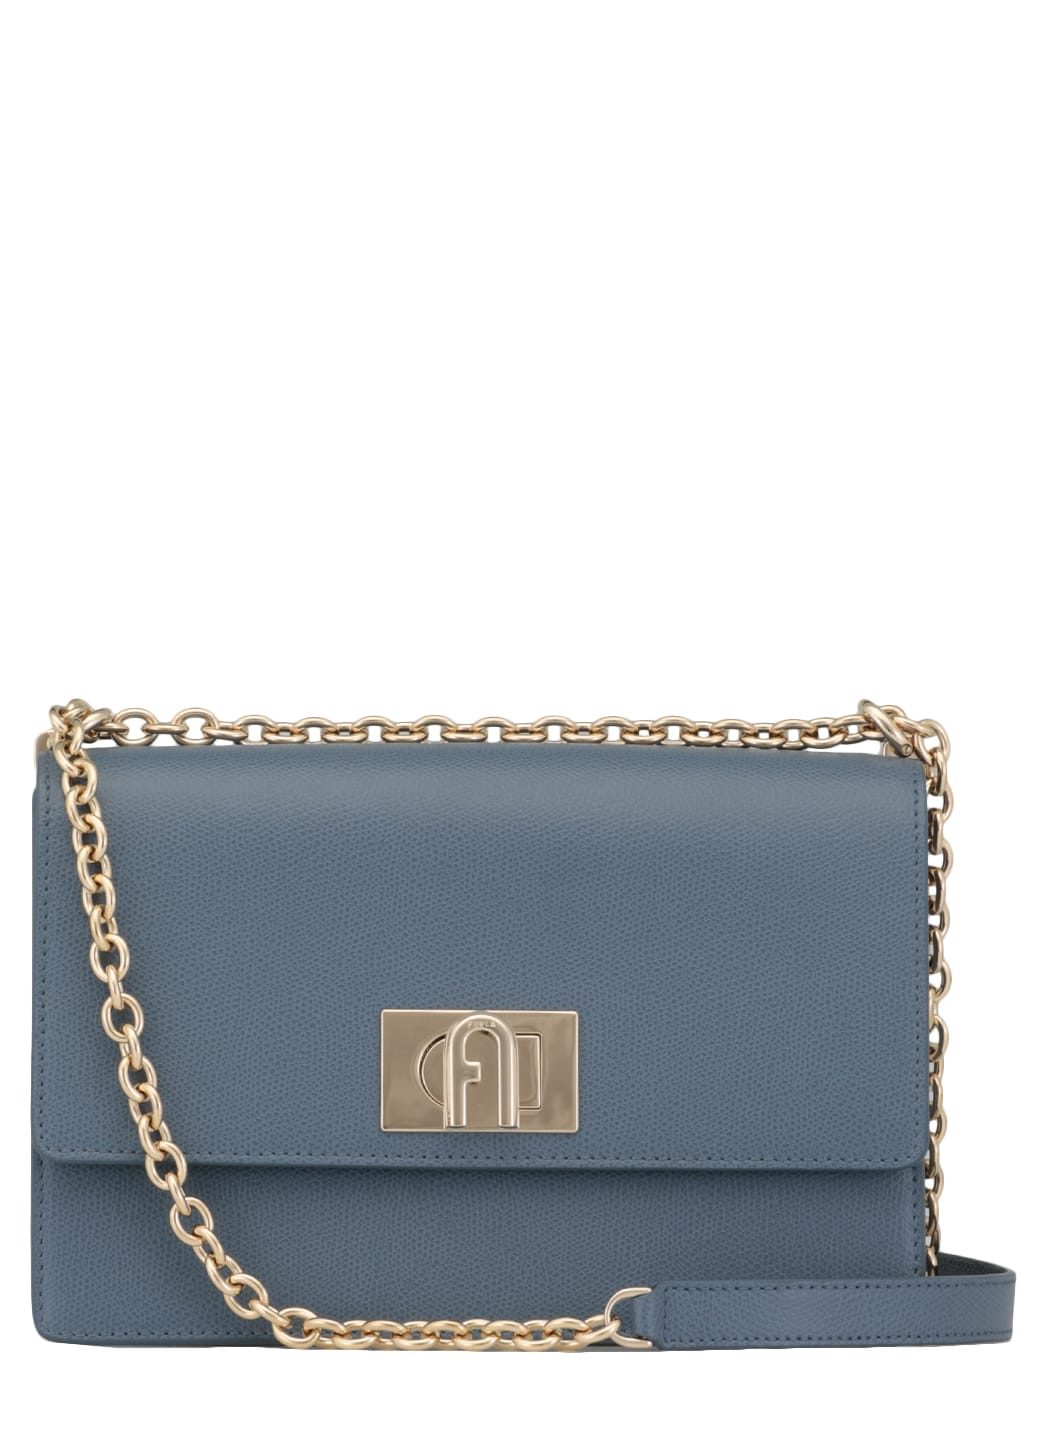 Furla PEBBLED LEATHER SHOULDER BAG